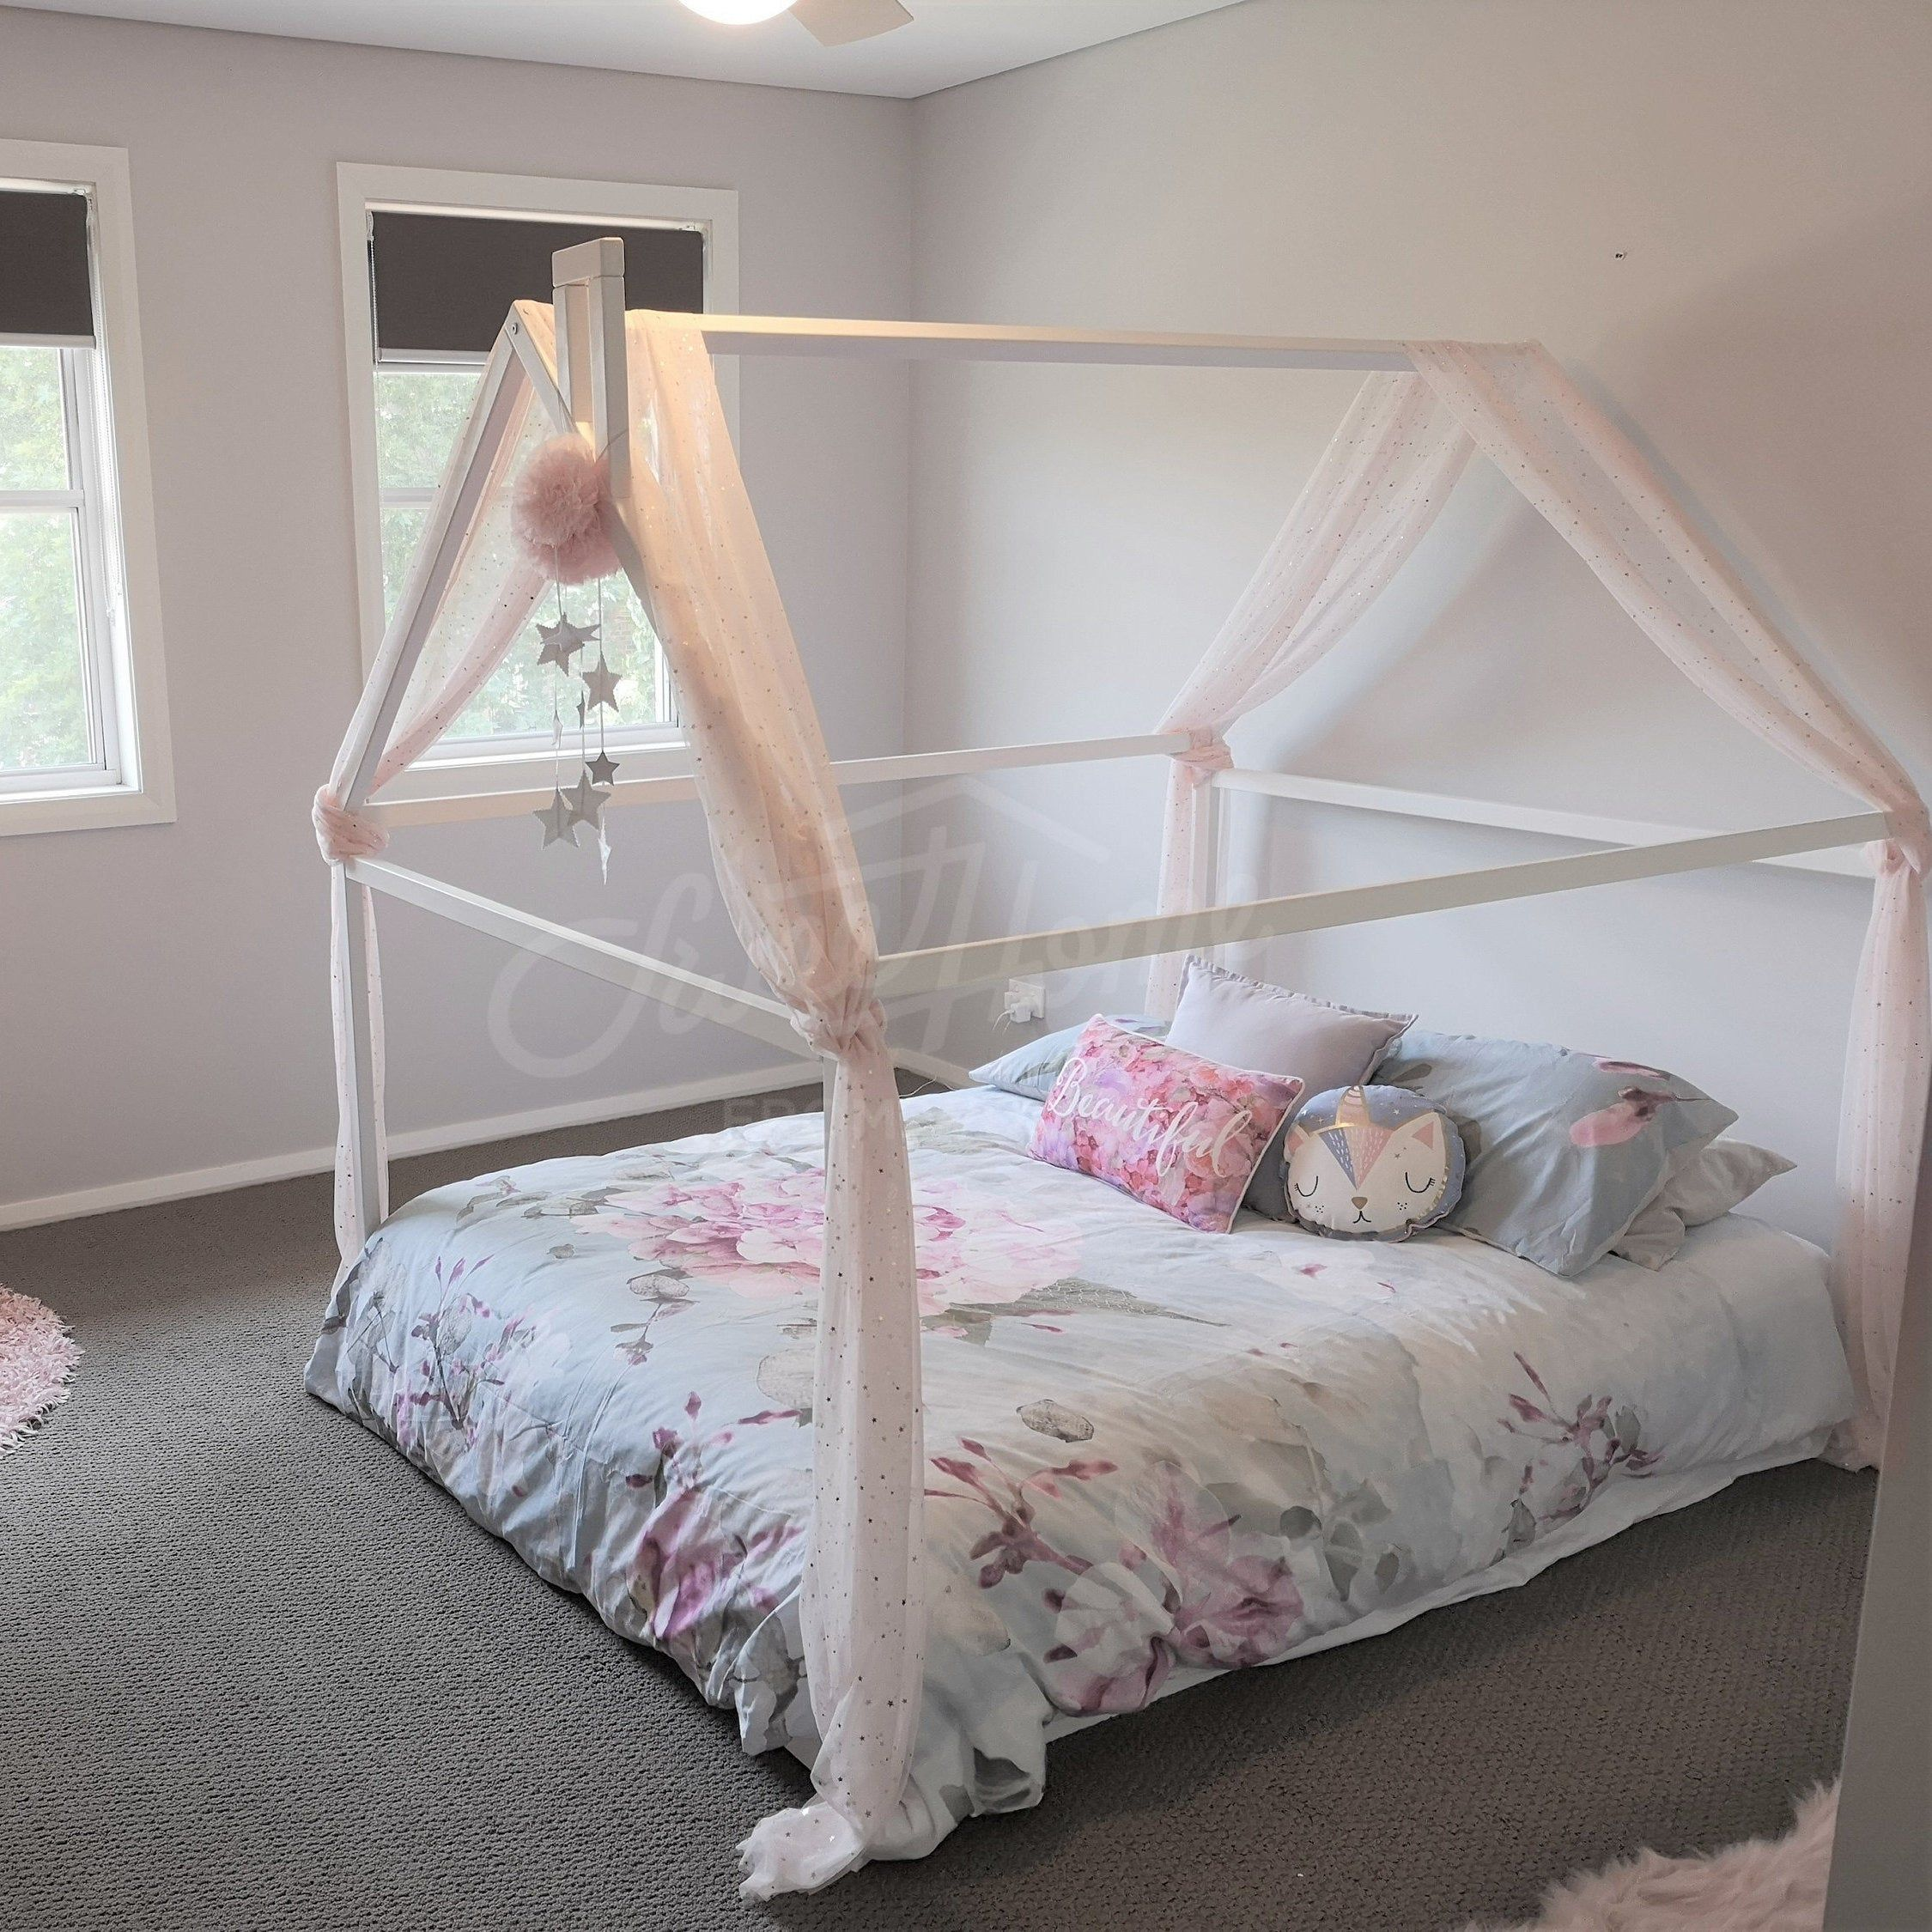 Wood Bed Full Double Toddler Bed Frame Tent Bed Wooden House Bed Frame Wood Nursery Bed House Baby Bed Wood Bed Kids Bed Gift Slats In 2019 New House